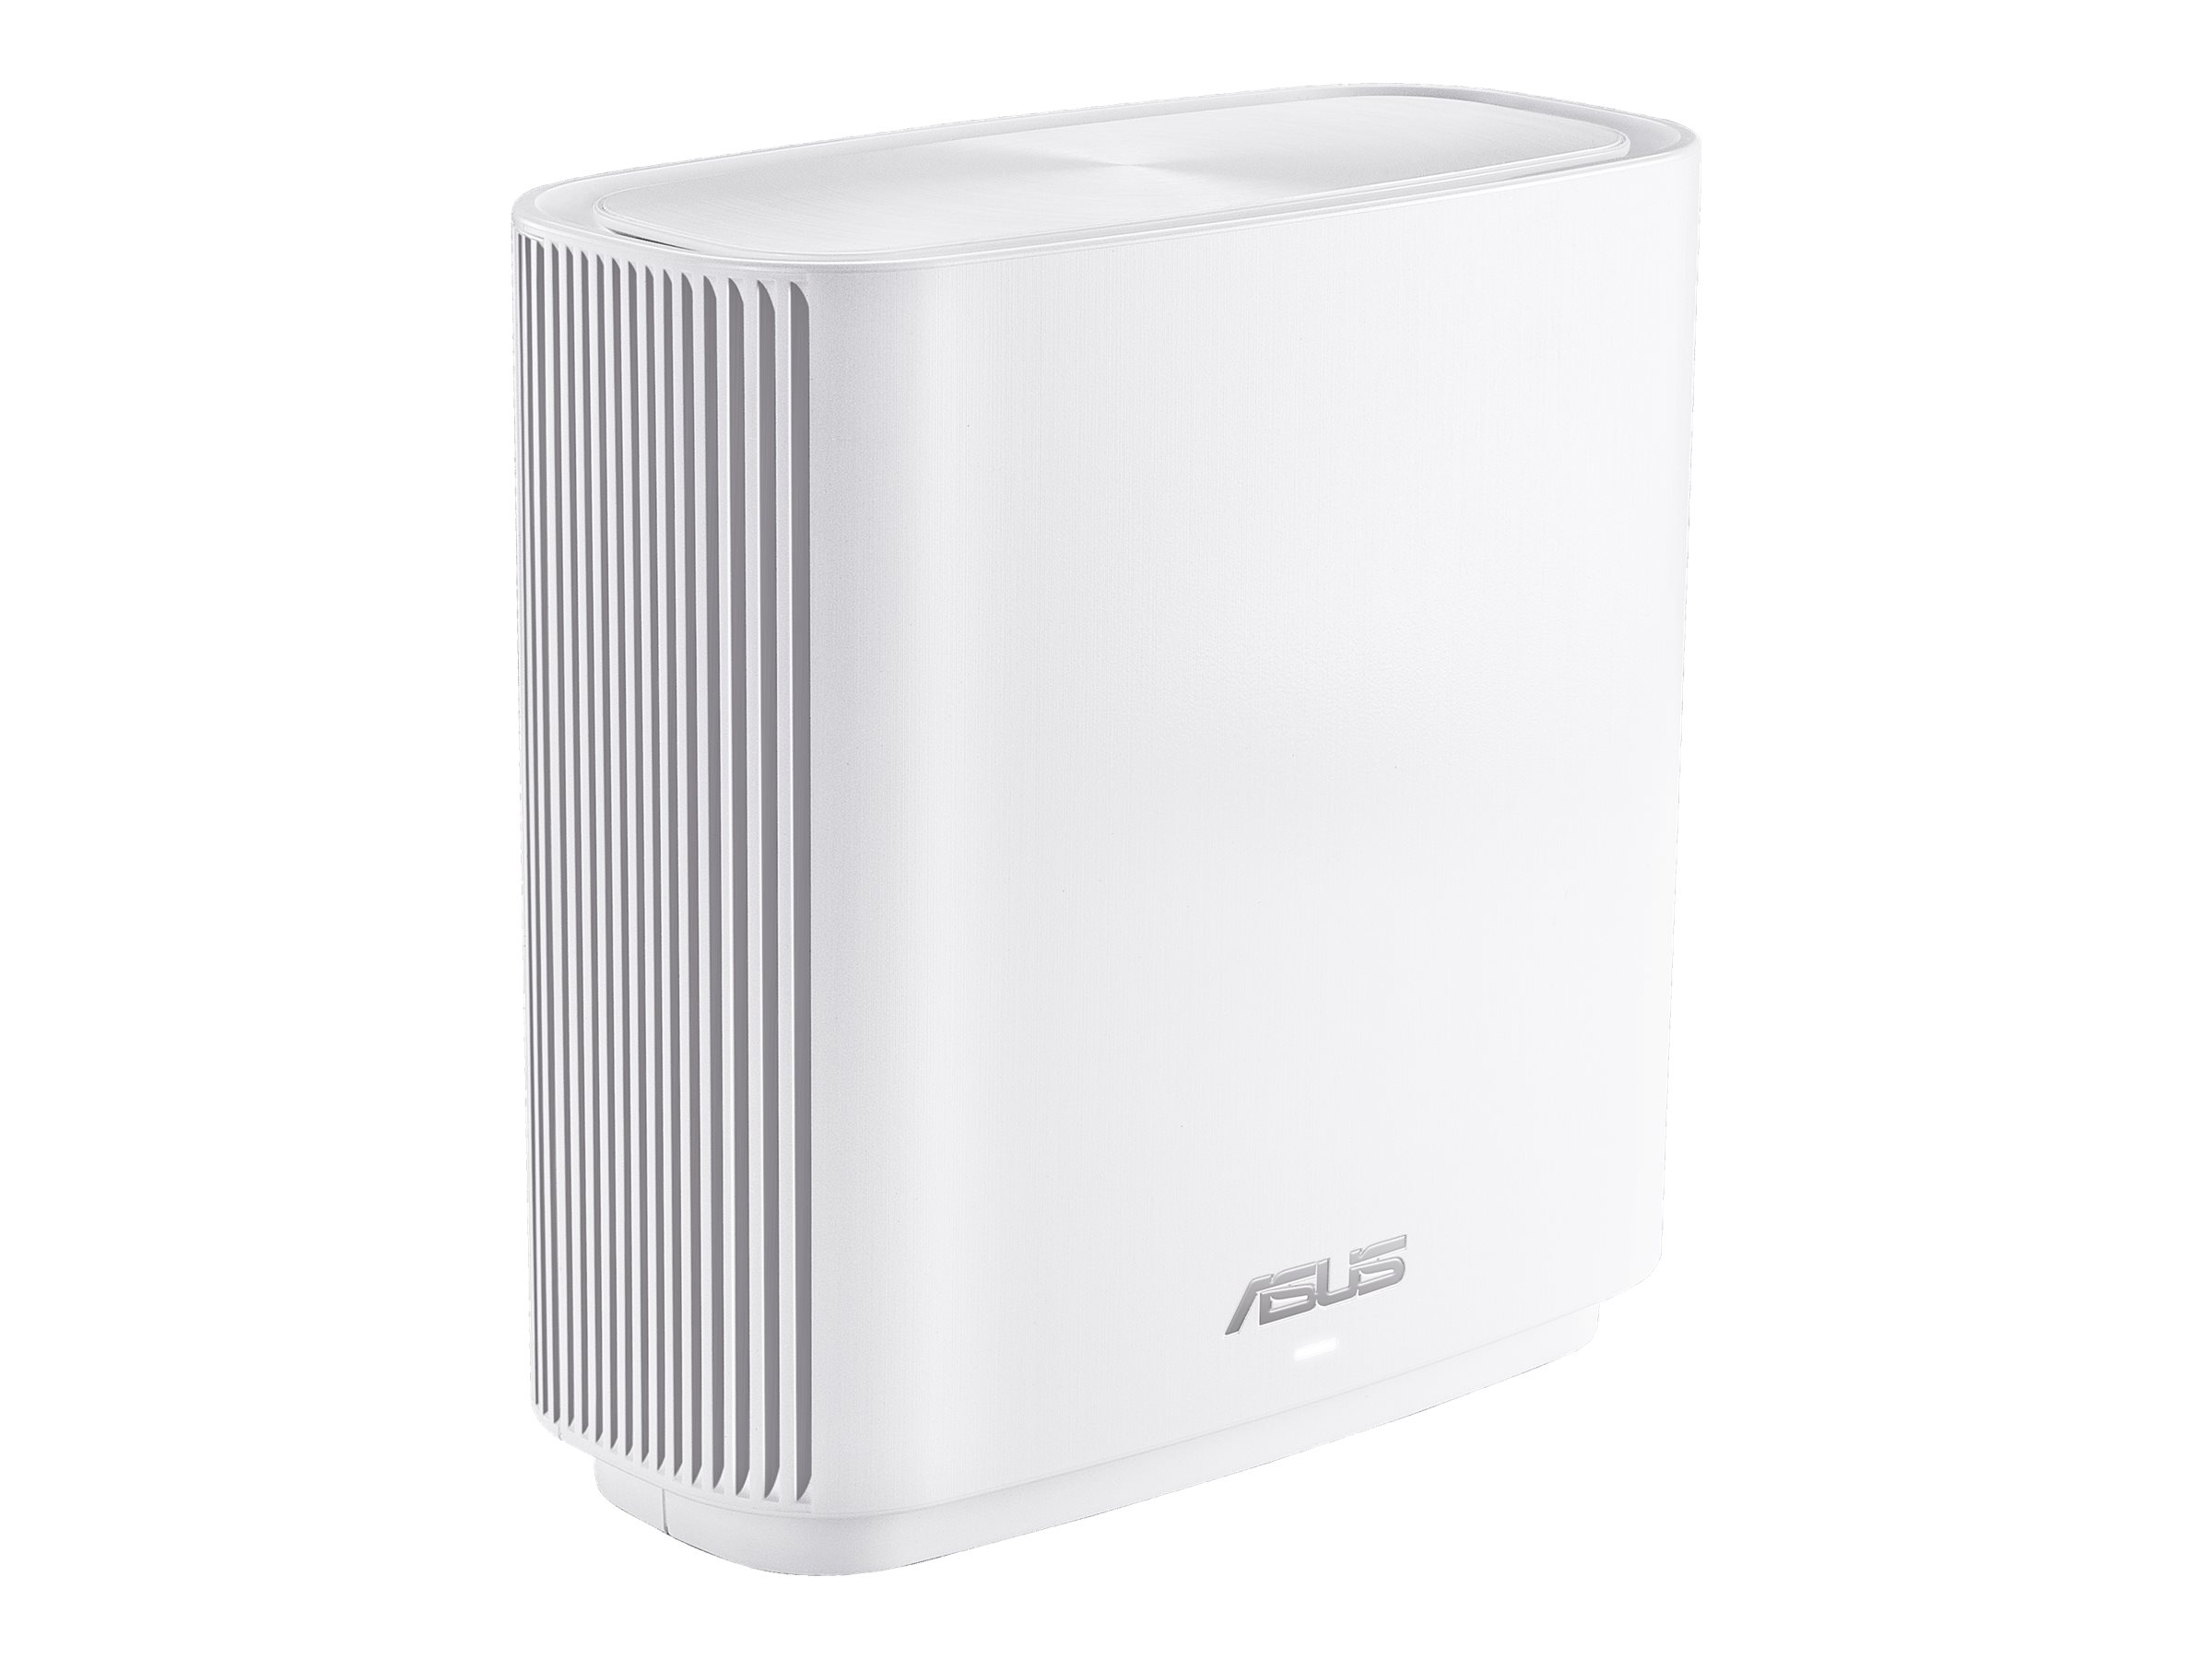 ASUS ZenWiFi AC (CT8) - Router - 3-Port-Switch